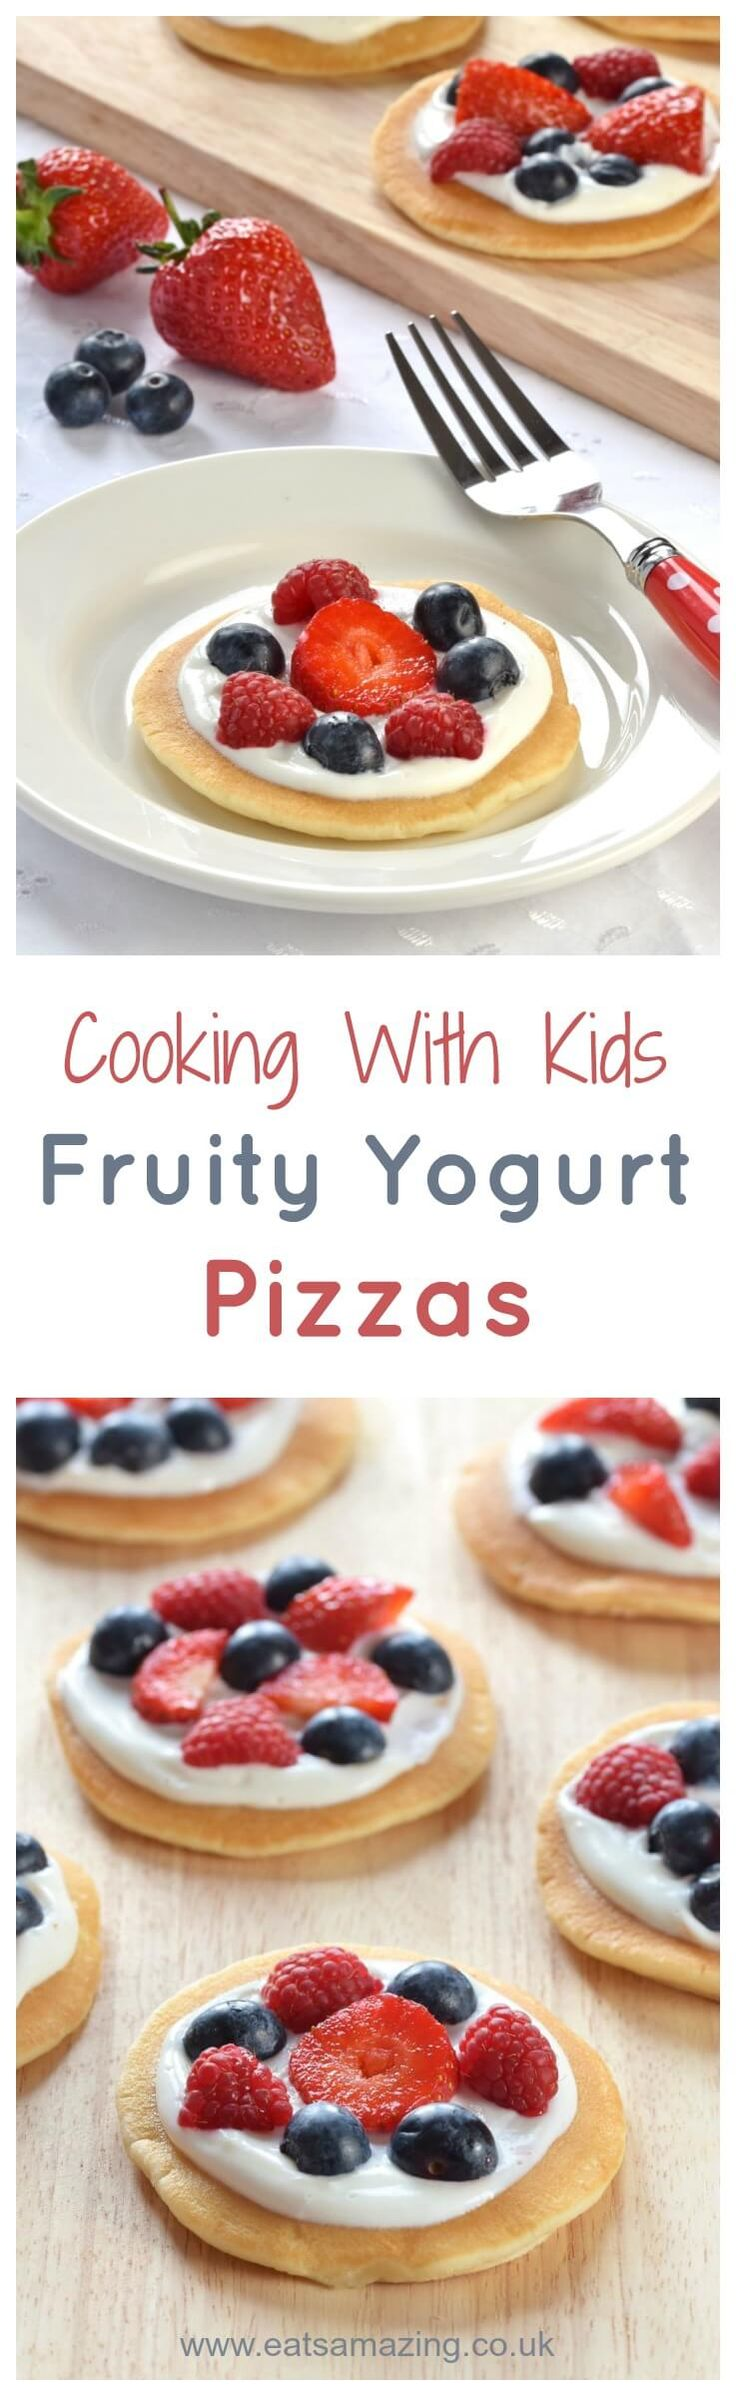 Cute mini fruit pizzas topped with yogurt and berries - a great easy recipe to cook with kids this summer - fun food for kids from Eats Amazing UK